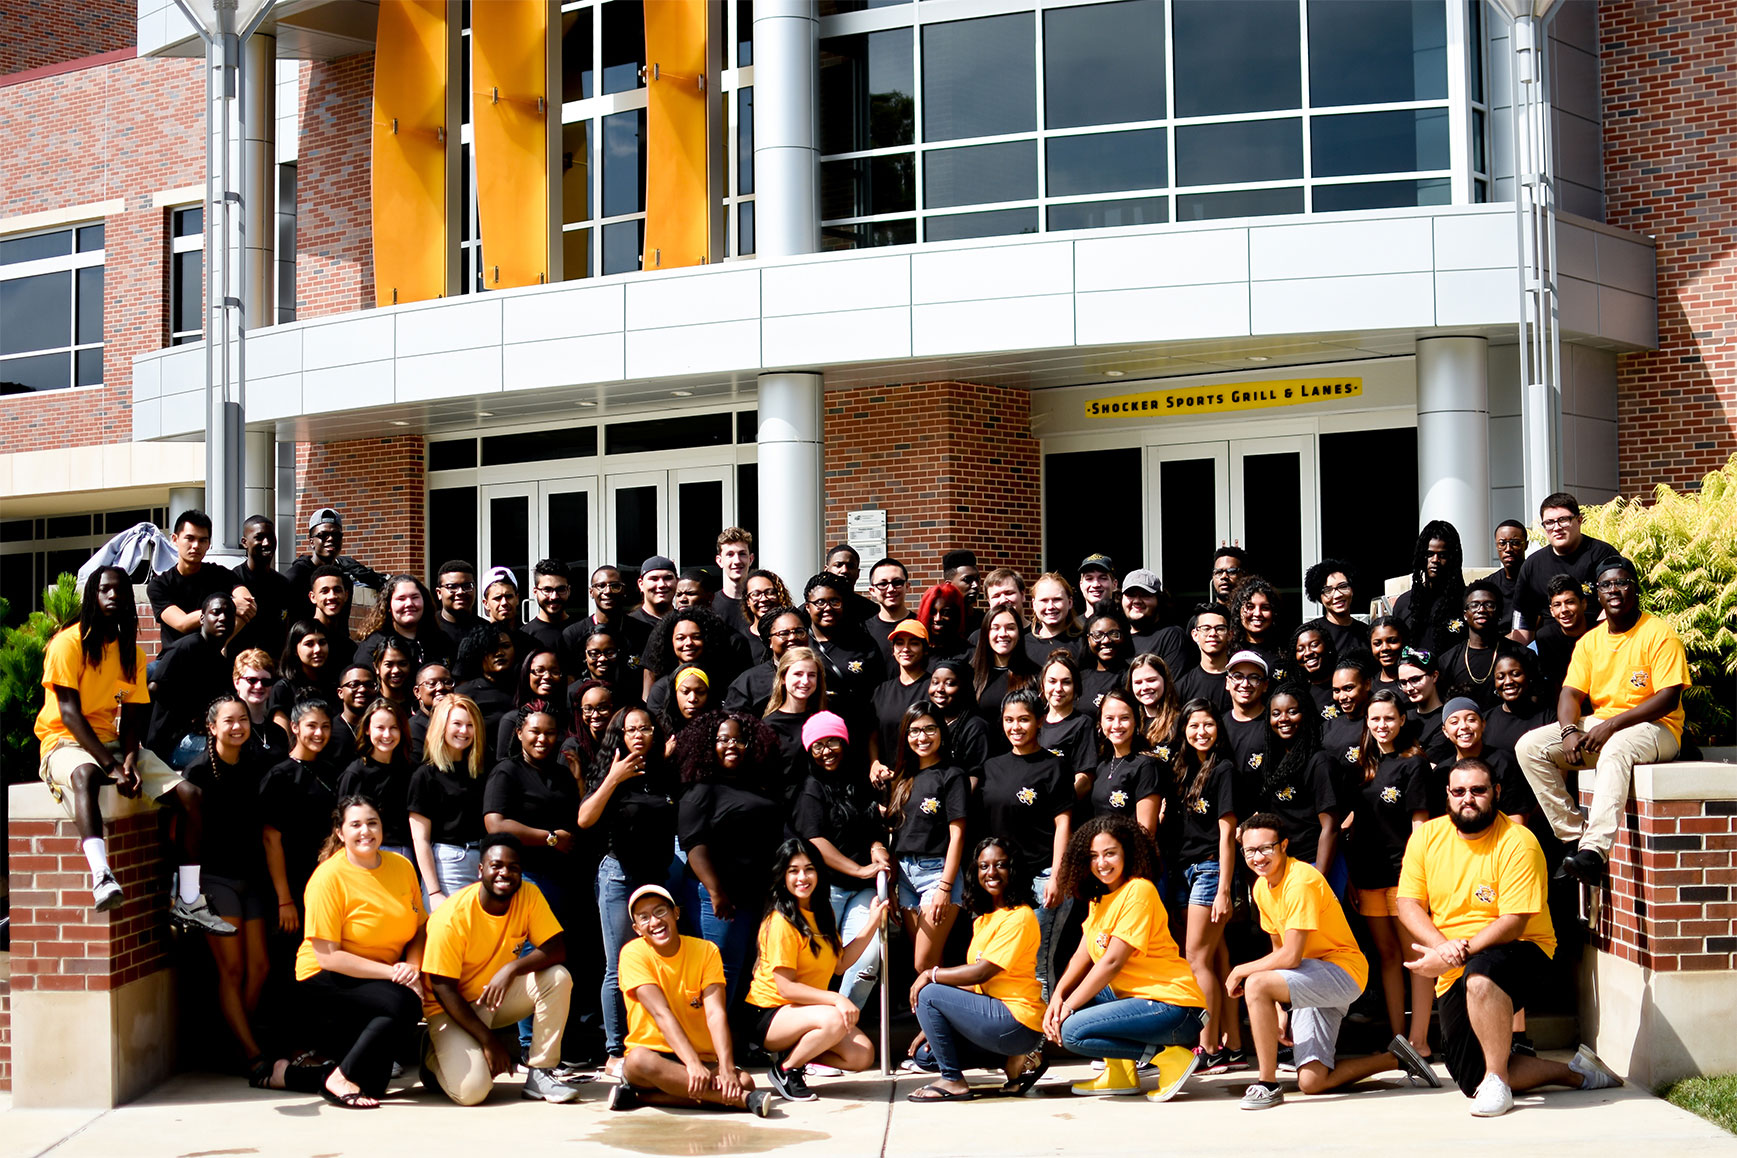 A group of students taking a picture together in front of RSC.